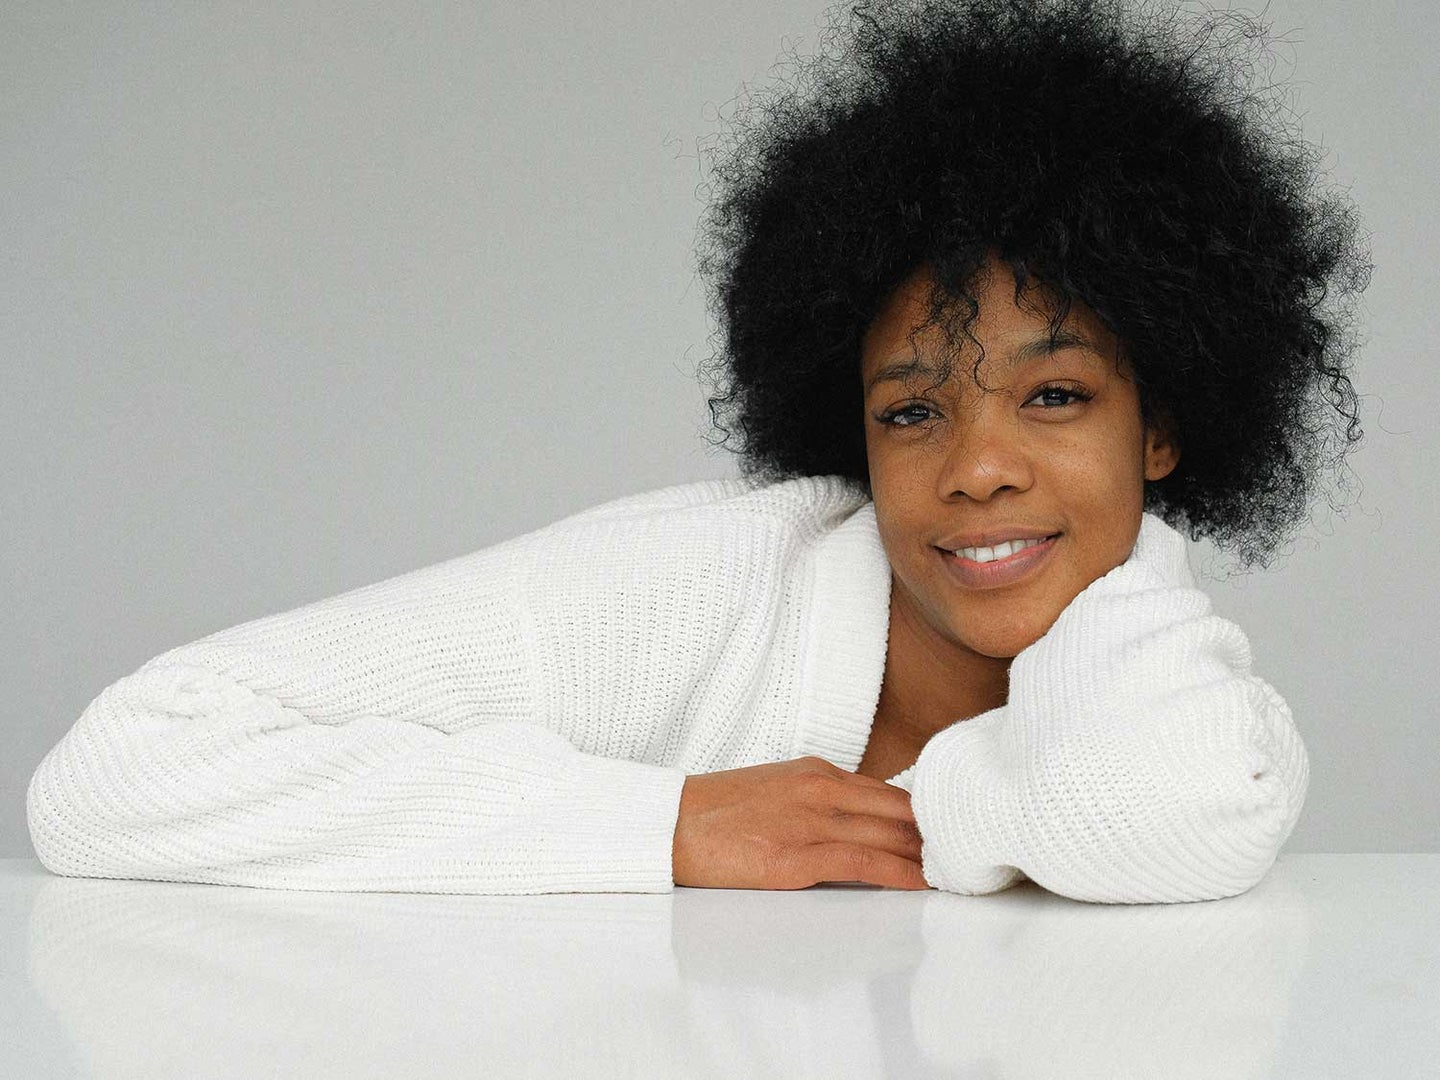 Woman with beautiful, radiant skin leaning  on table.